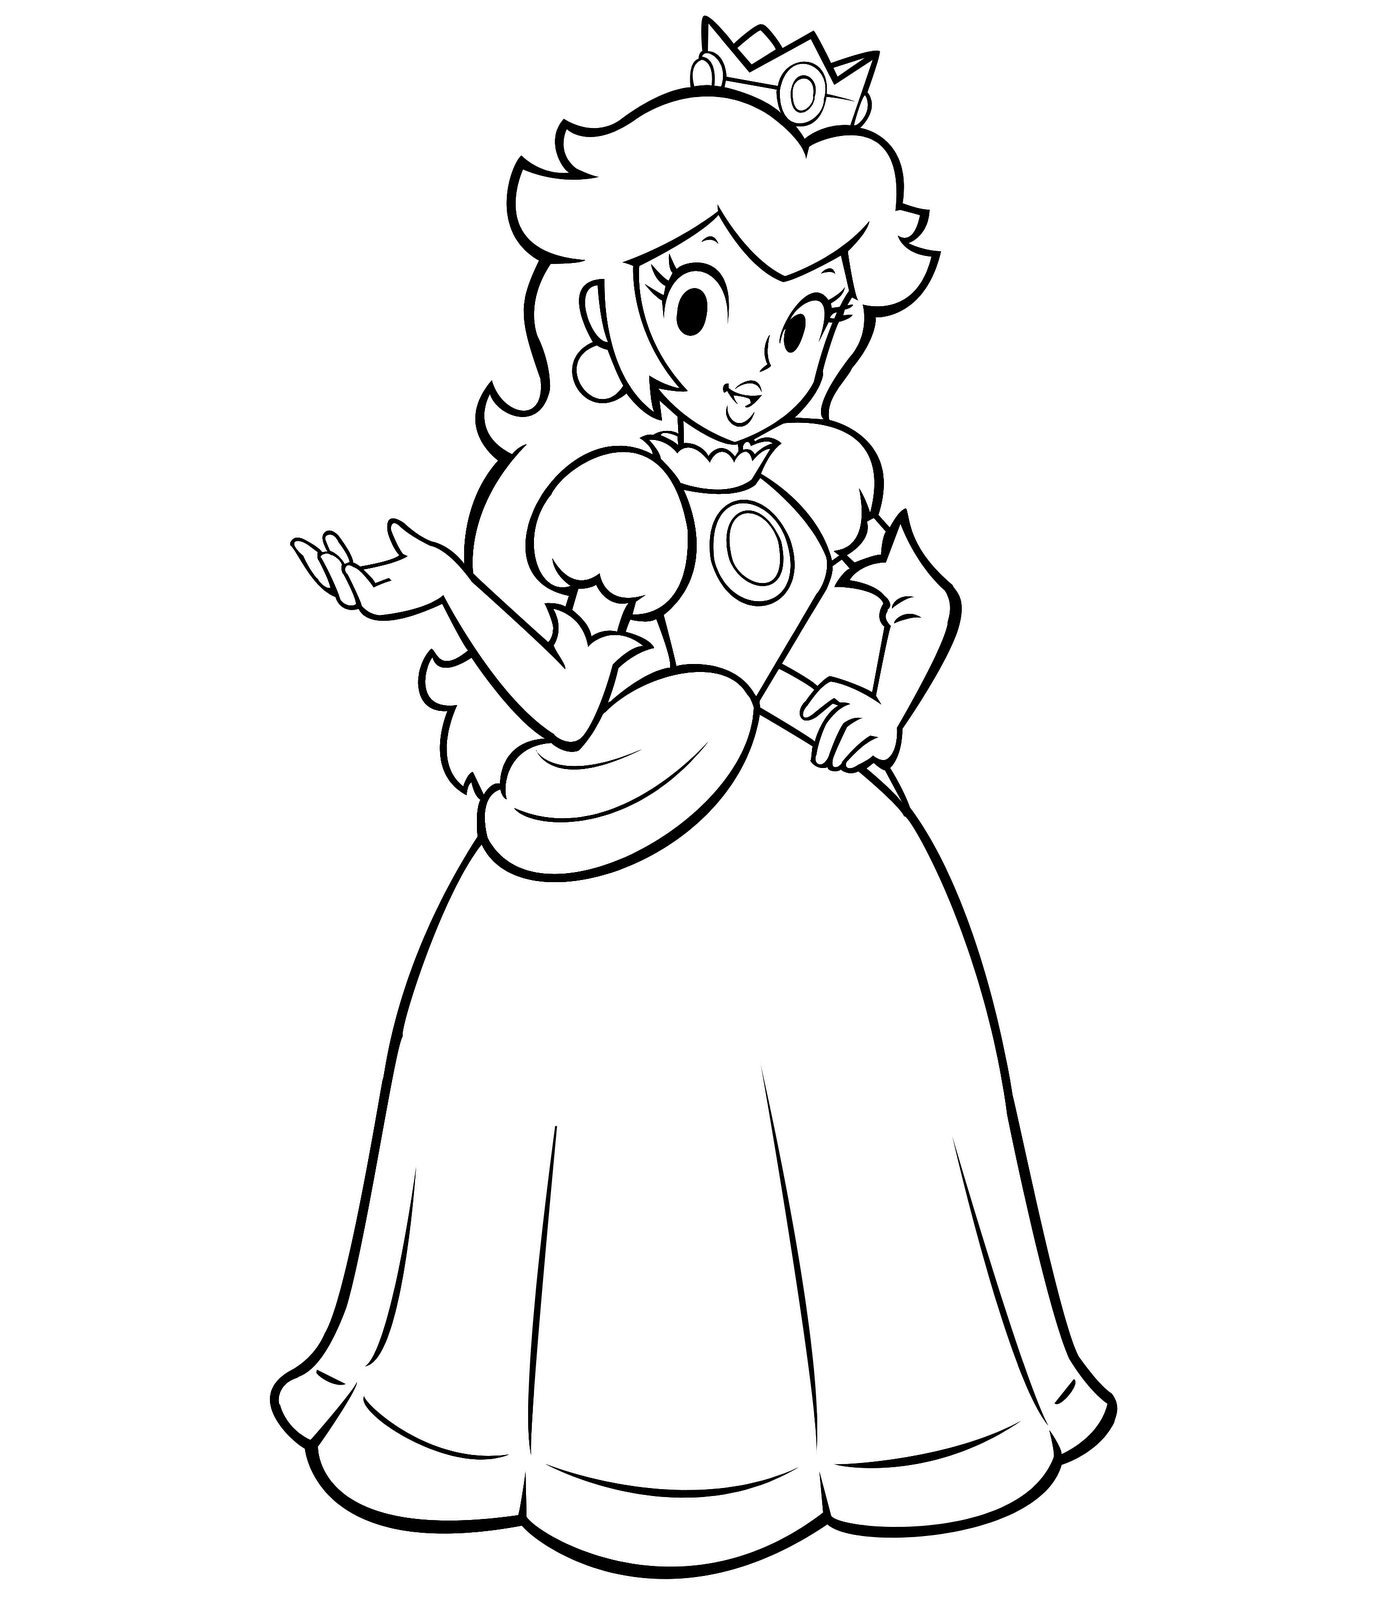 1387x1600 Mario Princess Daisy Coloring Page Free Printable Pages Throughout